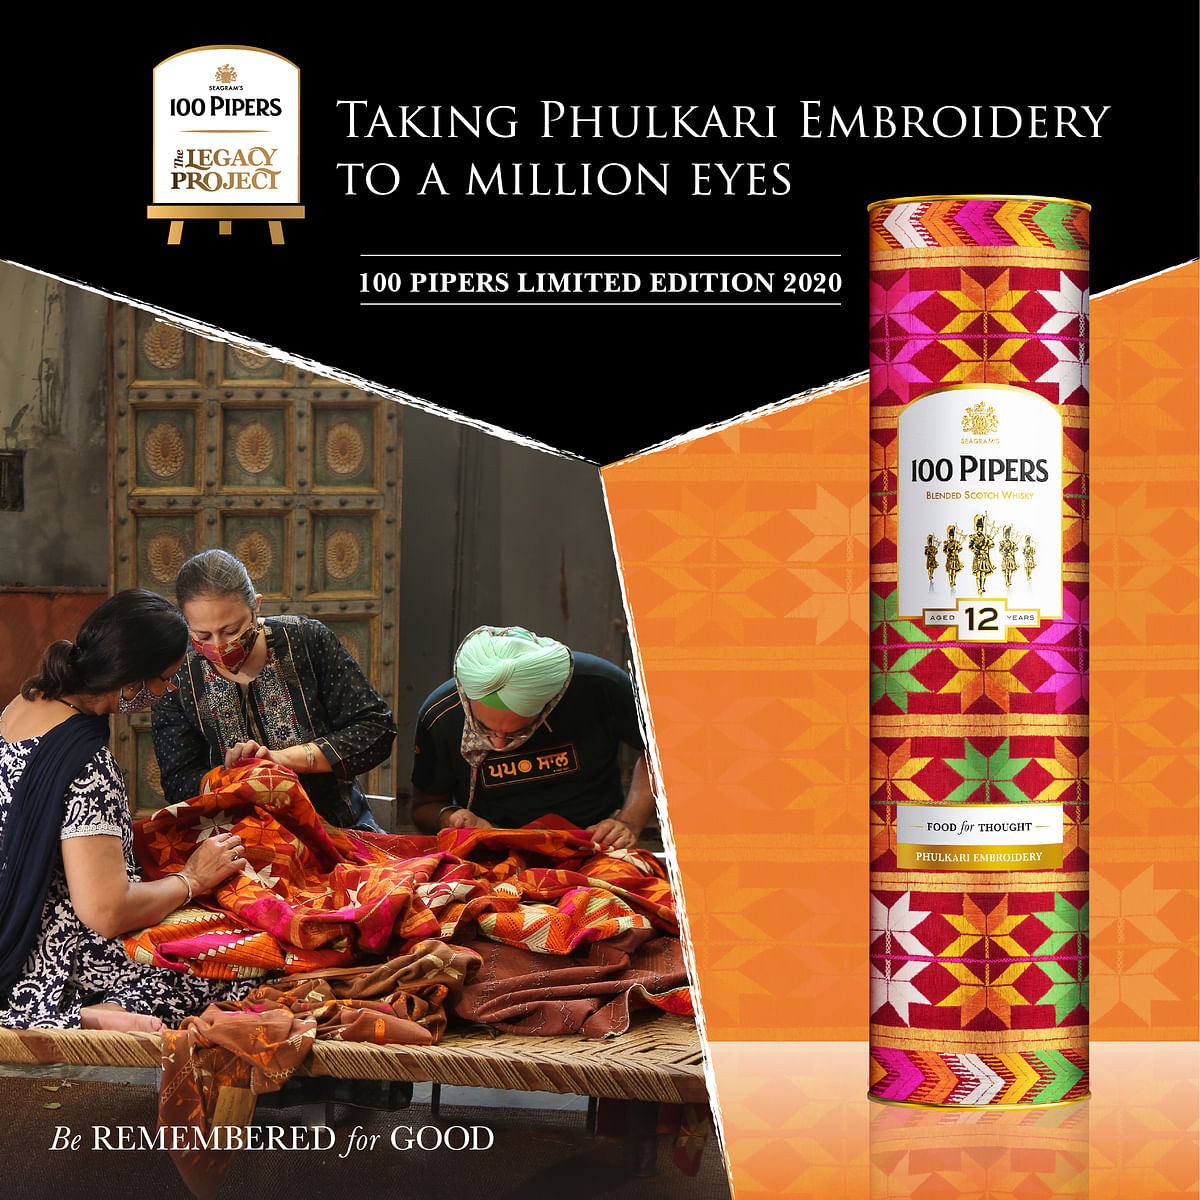 100 Pipers Legacy Project Shines Spotlight on India's Dying Arts